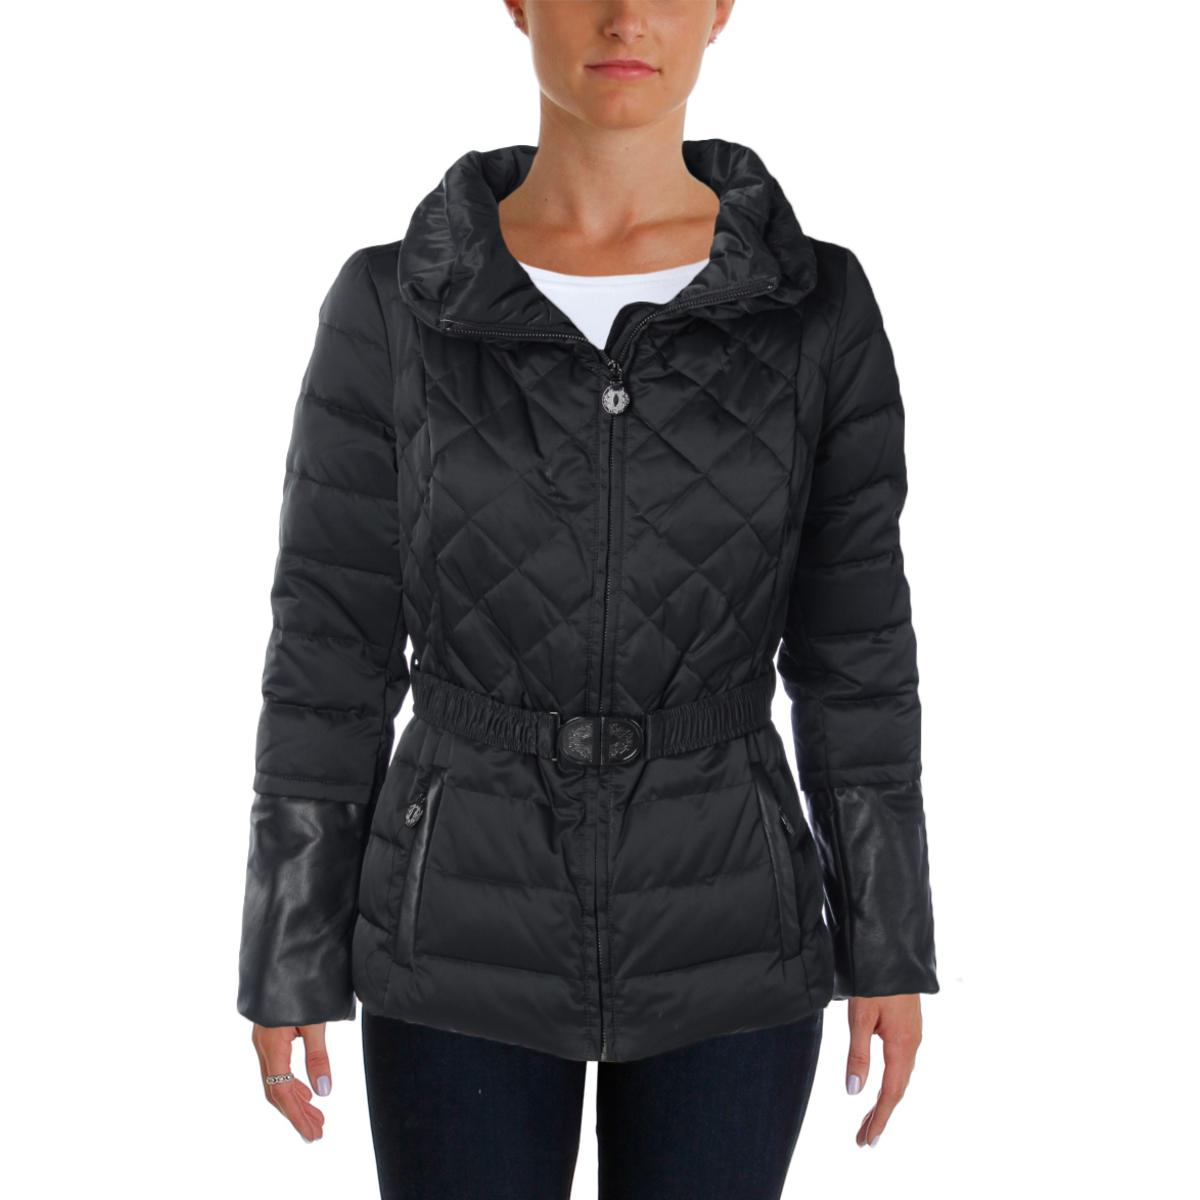 Elie Tahari 2376 Womens Down Leather Trim Quilted Puffer